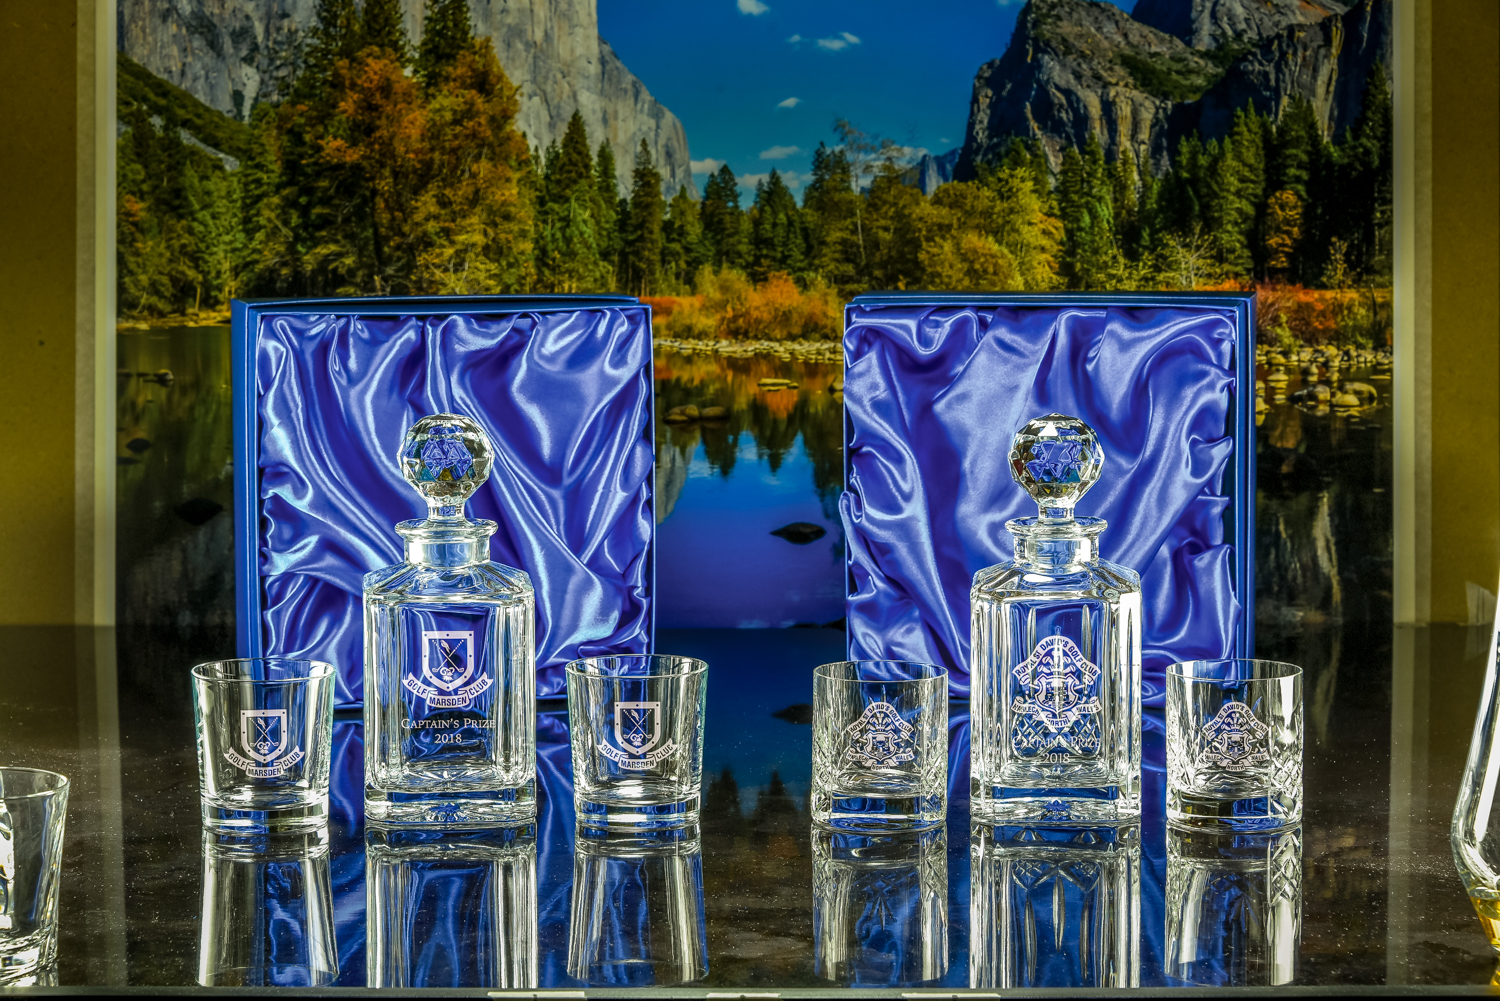 Majestic Crystal 2019 Brochure photos Boxed Set of Plain Salisbury Decanter & Two Toscana Tumblers-3